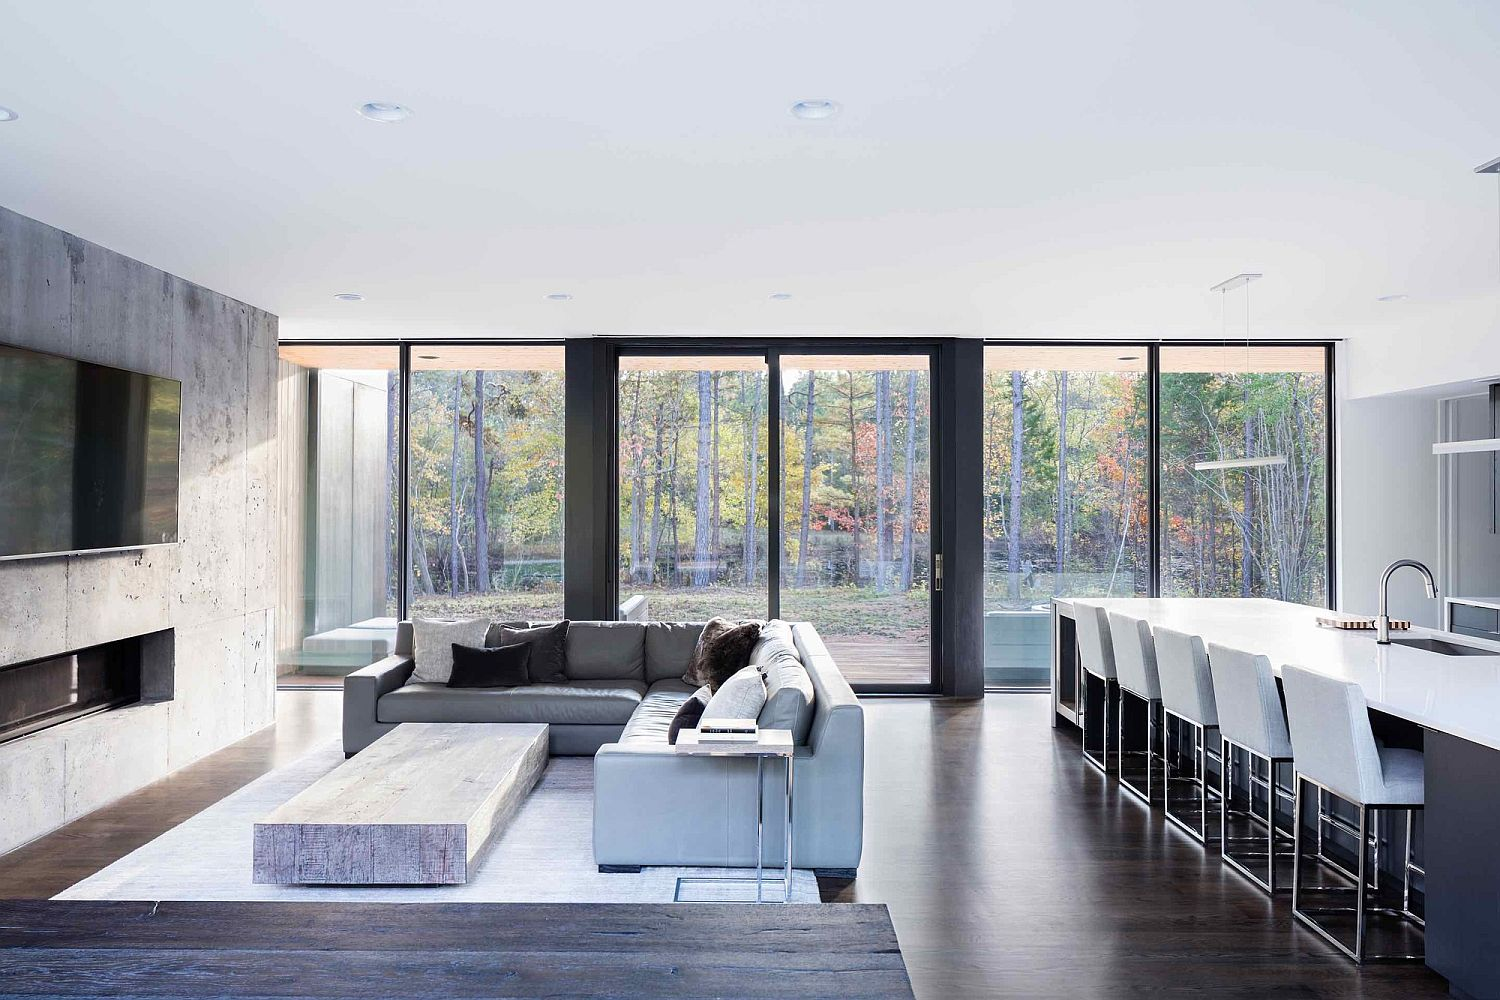 Large-glass-doors-and-windows-connect-the-minimal-interior-with-view-outside